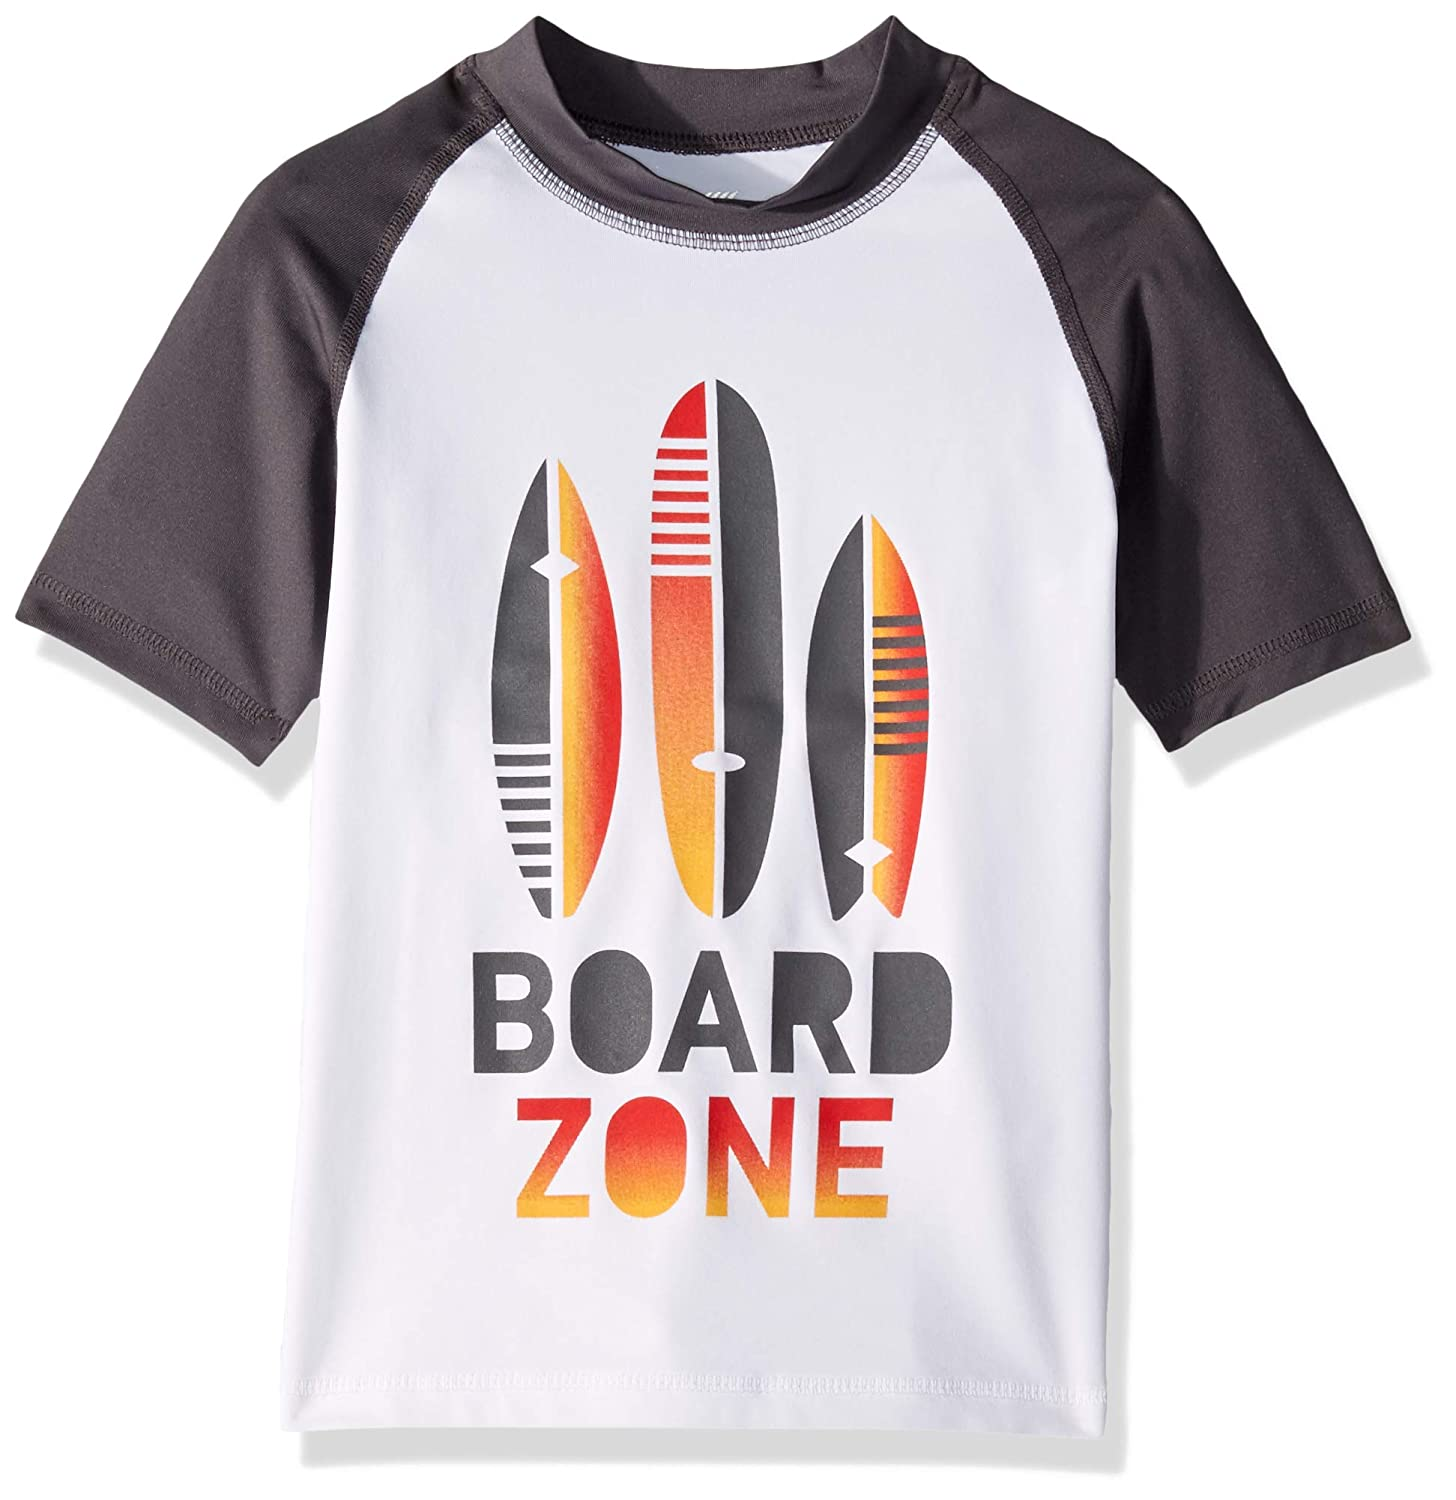 The Childrens Place Big Boys Short Sleeve Rashguard